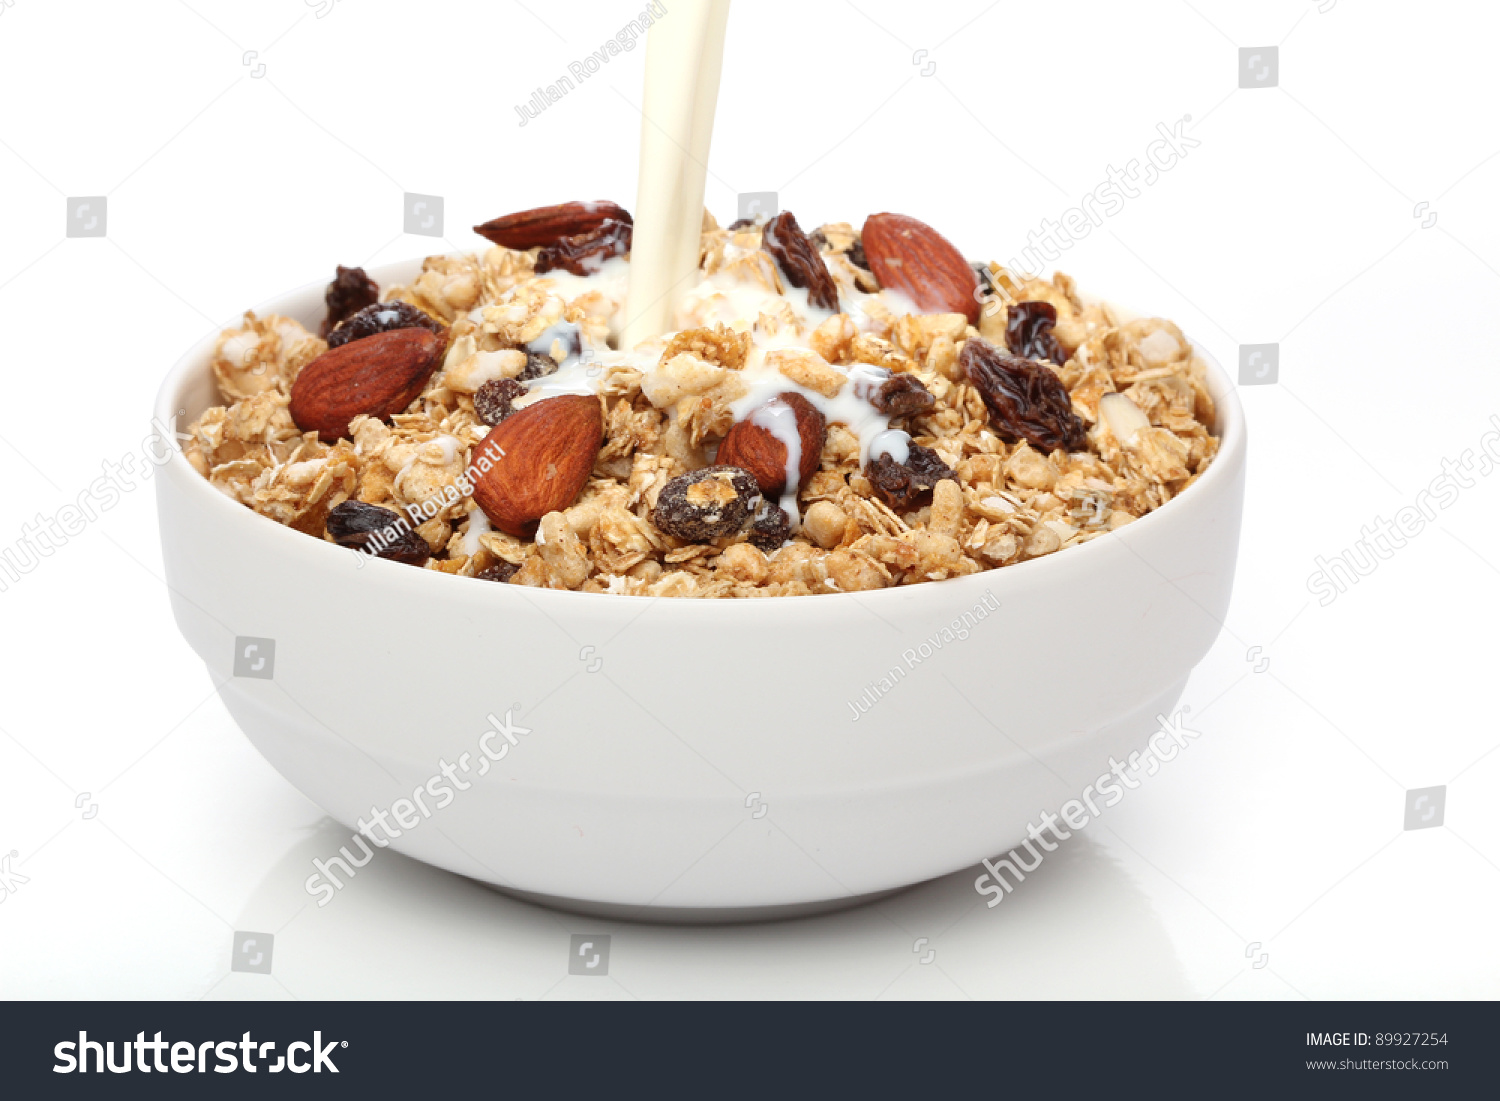 Pouring Milk Into A Bowl With Granola Cereal Stock Photo 89927254 ...